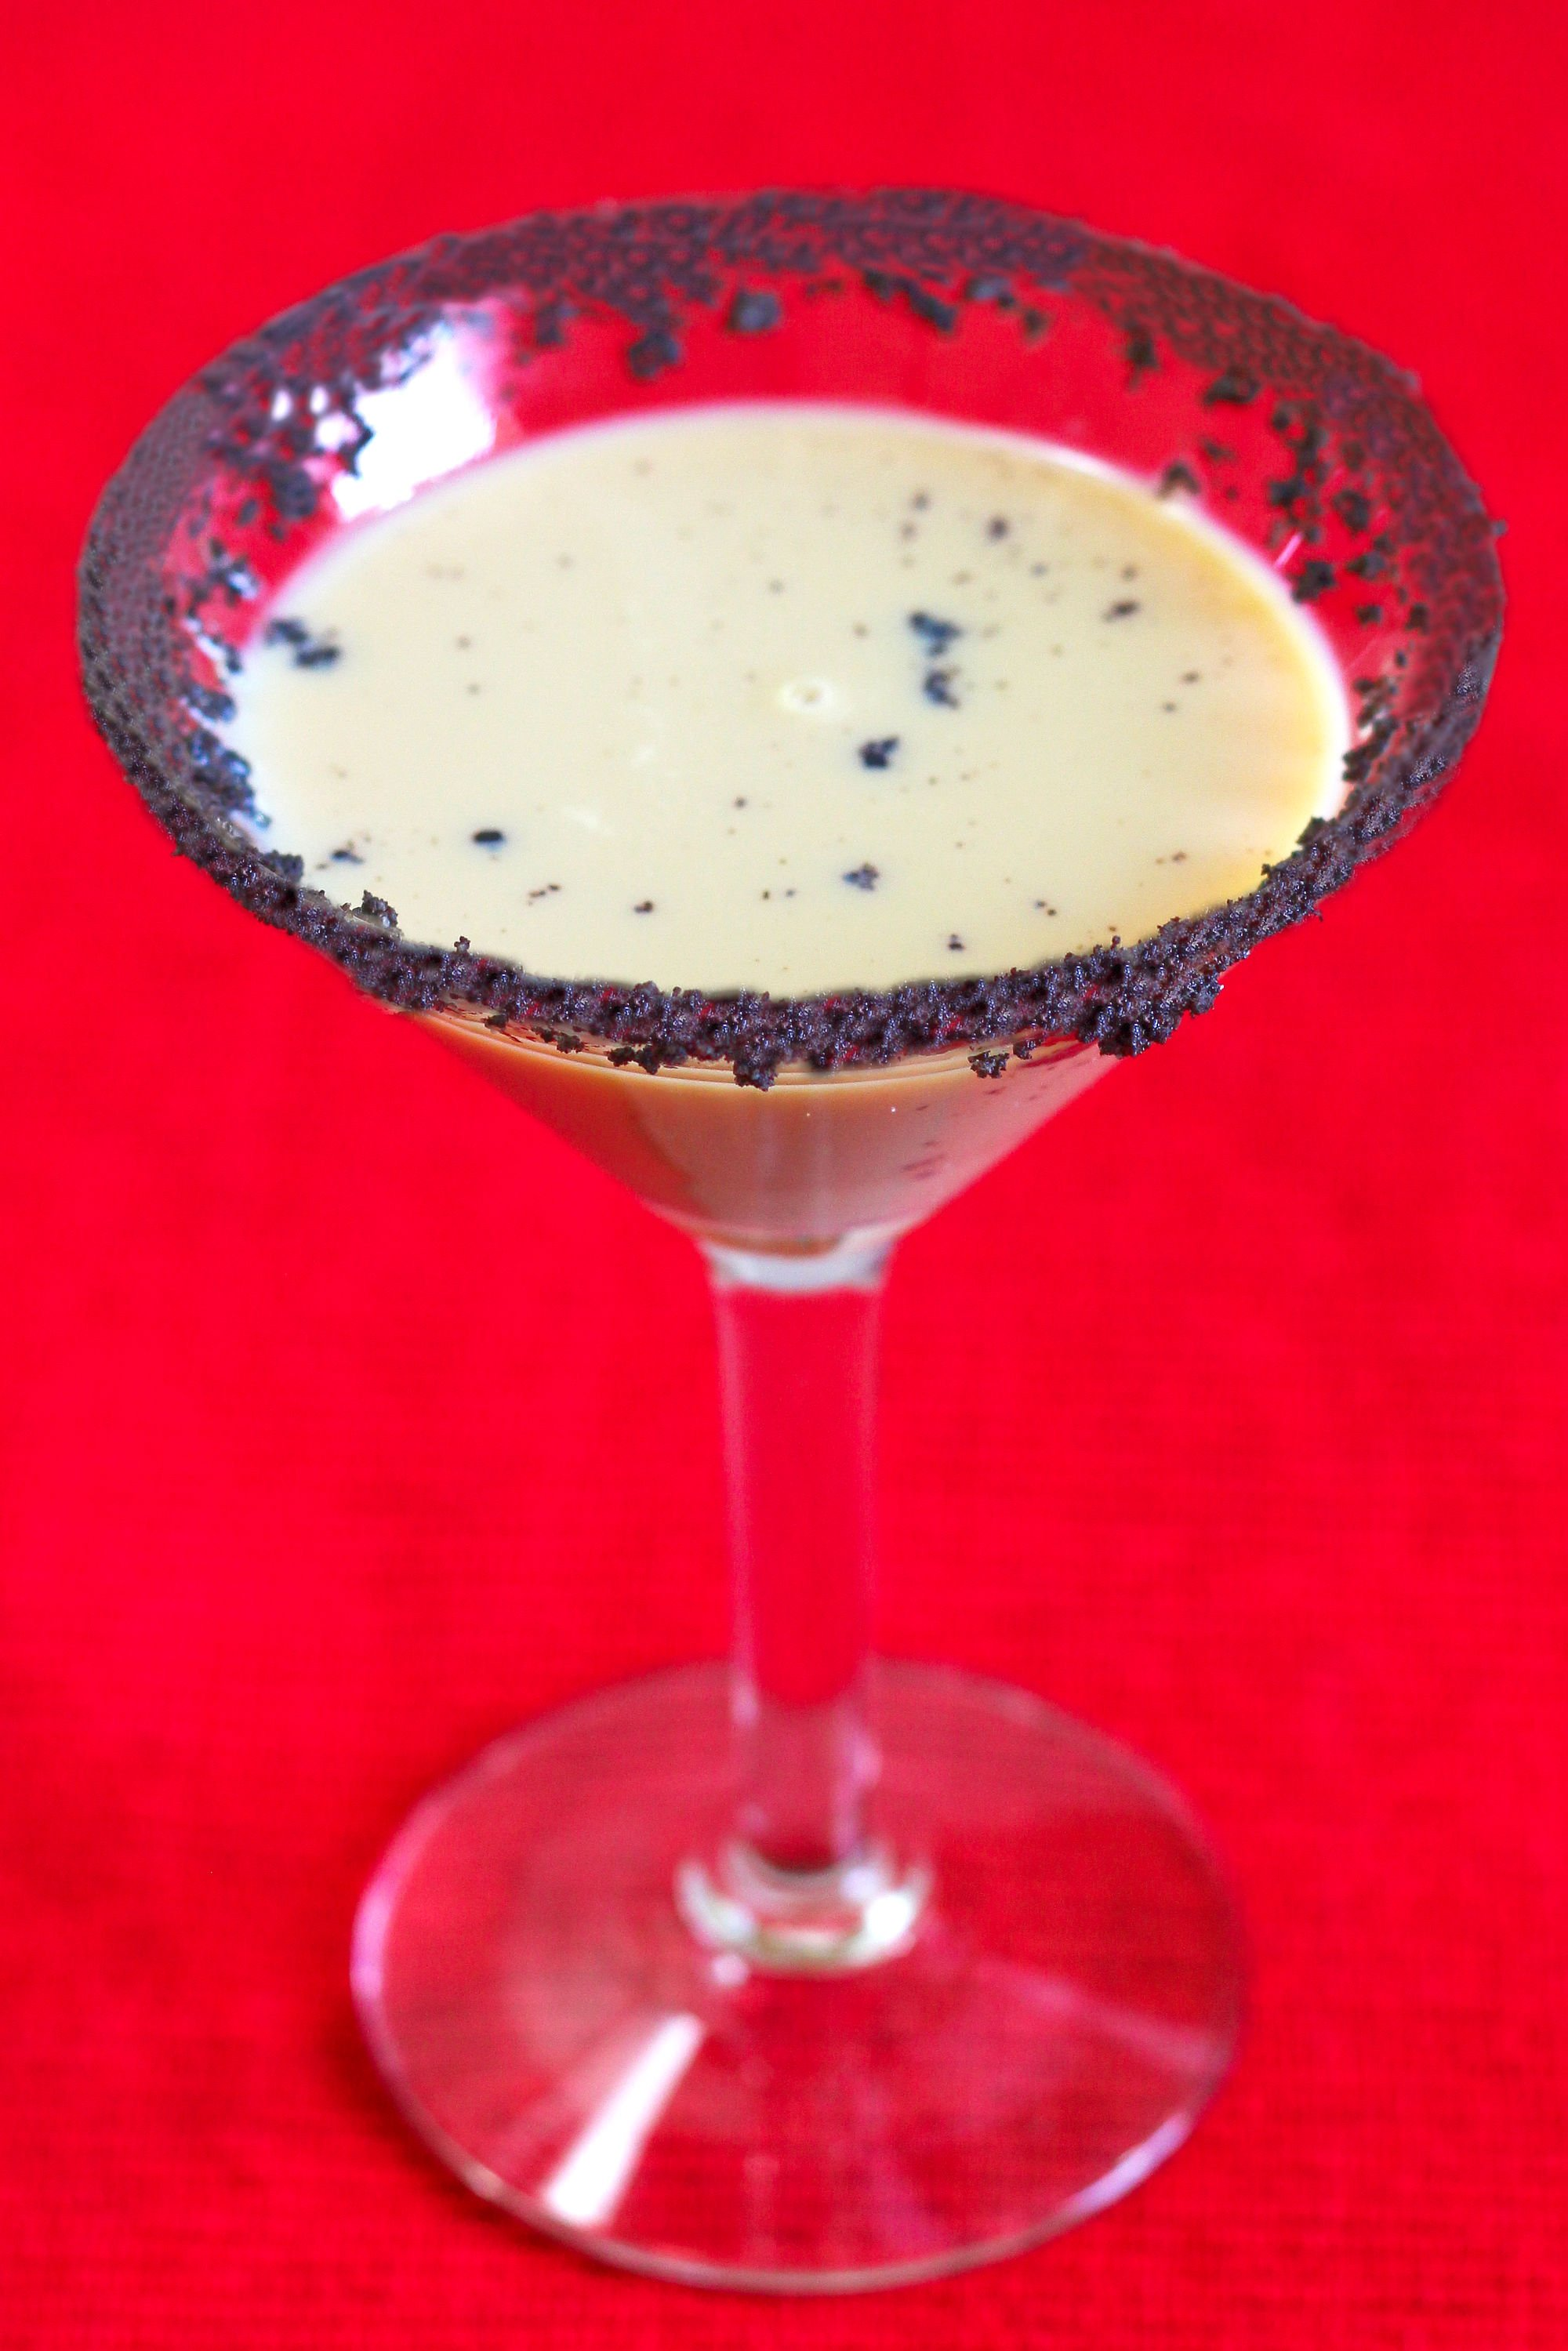 The Reindeer Tracks Martini is a delicious blend of chocolate vodka, Frangelico and creme de cacao, garnished with a chocolate cookie rim. Chocolate and a hint of hazelnut are so easy to love together.